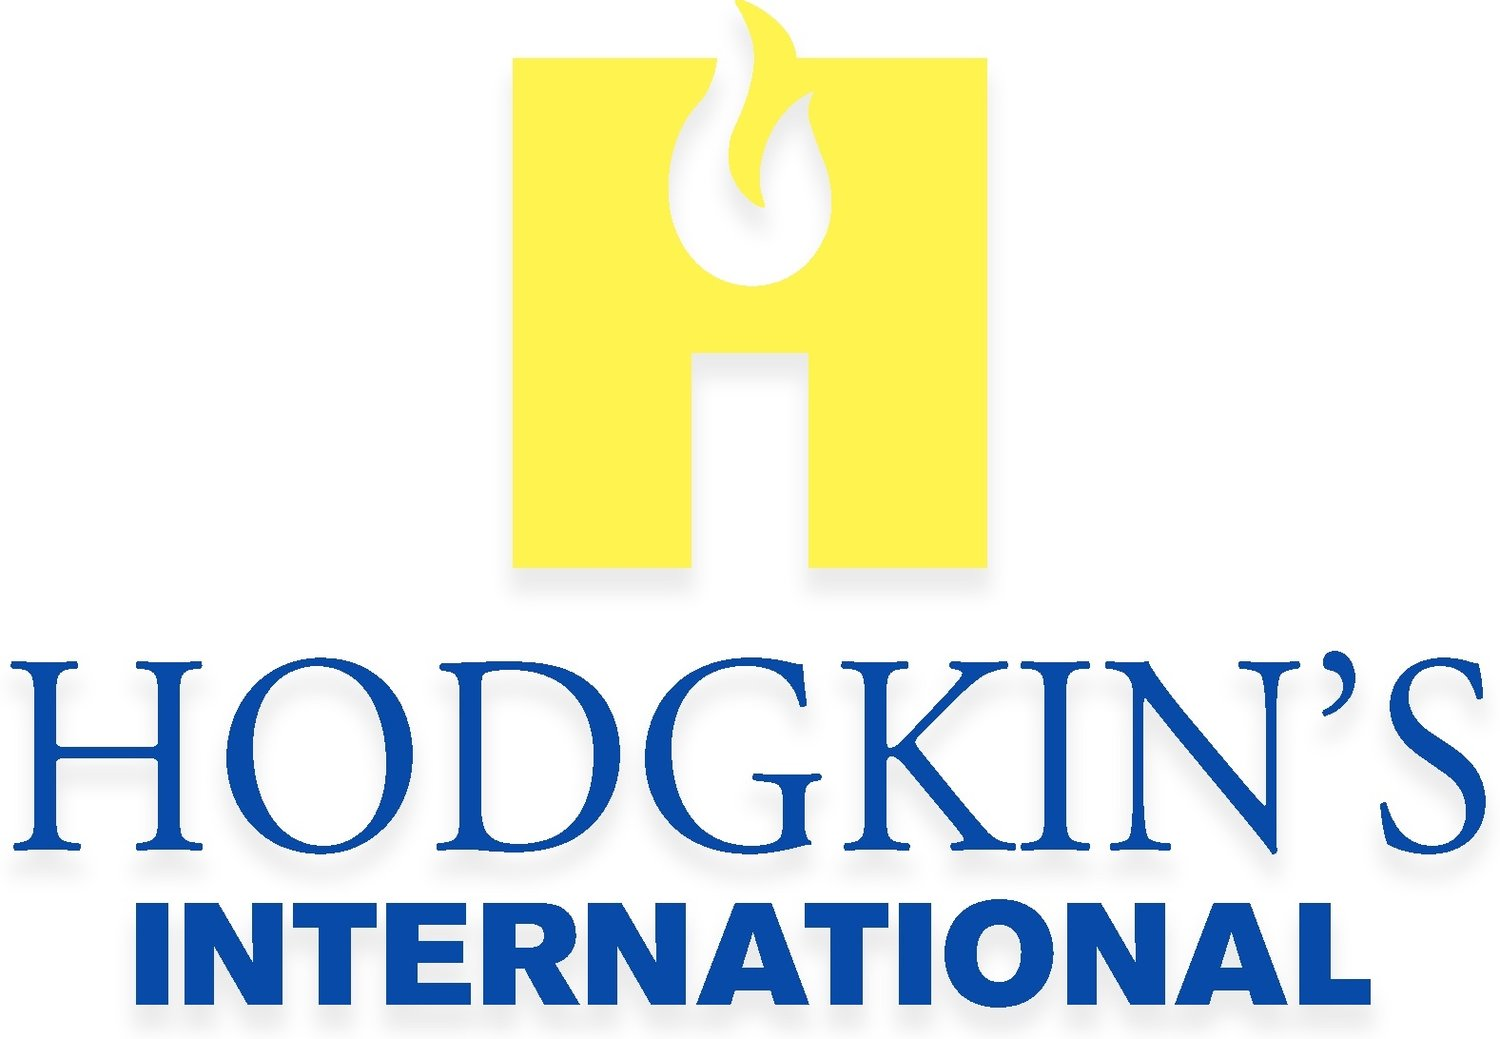 Hodgkin's International